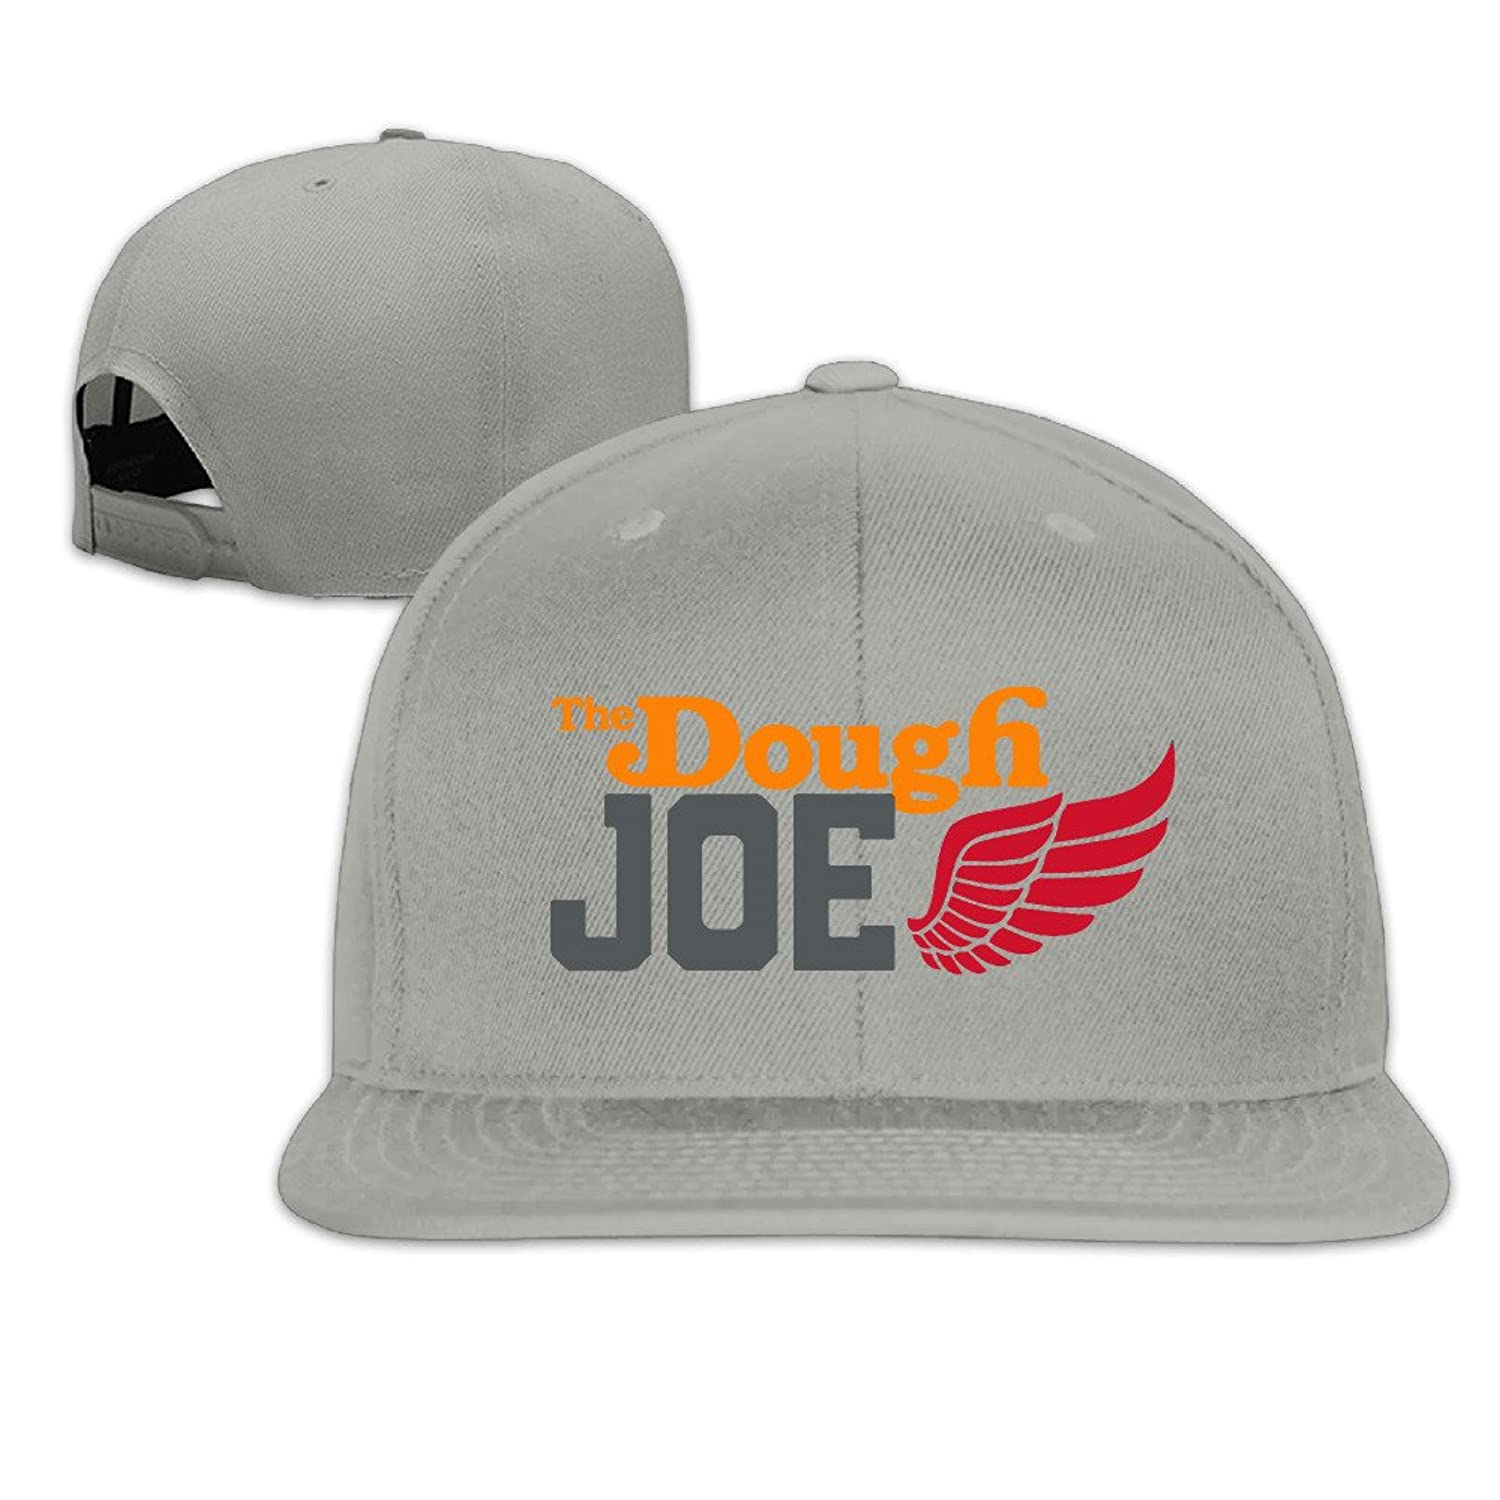 The Dougt Joe Snapback Flat Brim Hats Adjustable Ash Baseball Cap